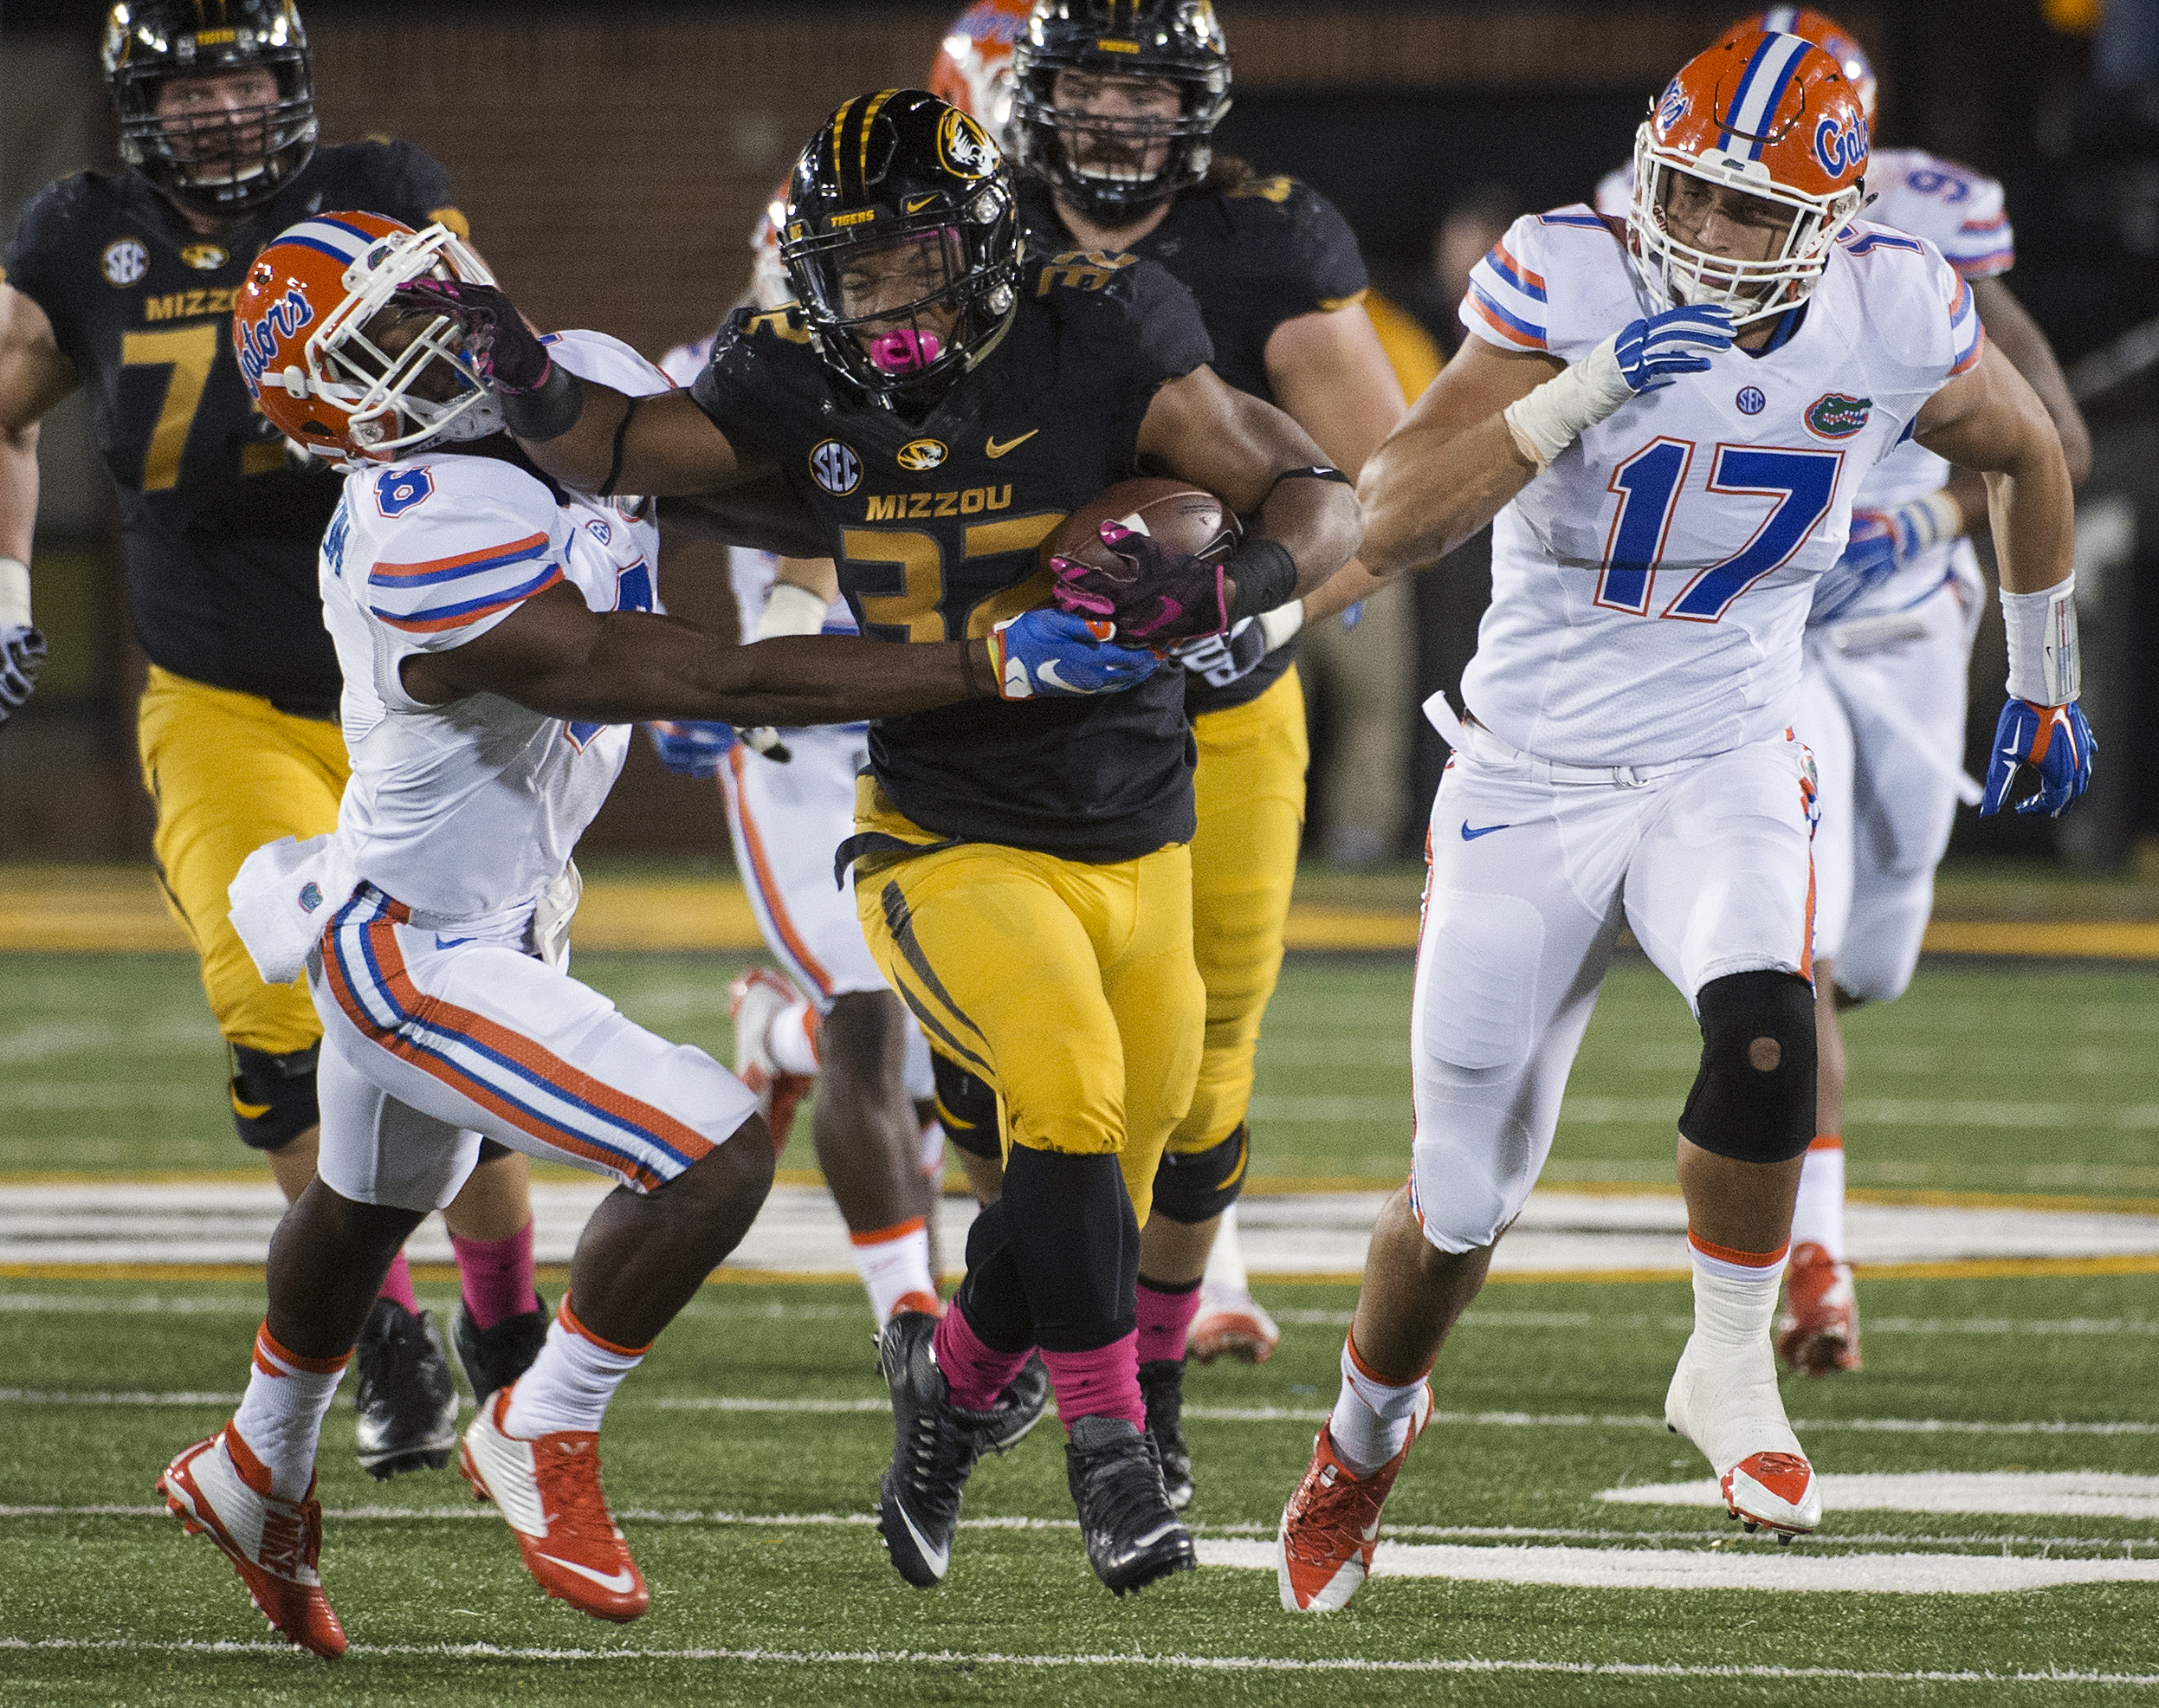 FILE - In this Oct. 10, 2015, file photo, Missouri running back Russell Hansbrough, center, fights his way past Florida's Nick Washington, left, and Jordan Sherit, right, during an NCAA college football game in Columbia, Mo. Some Missouri football players